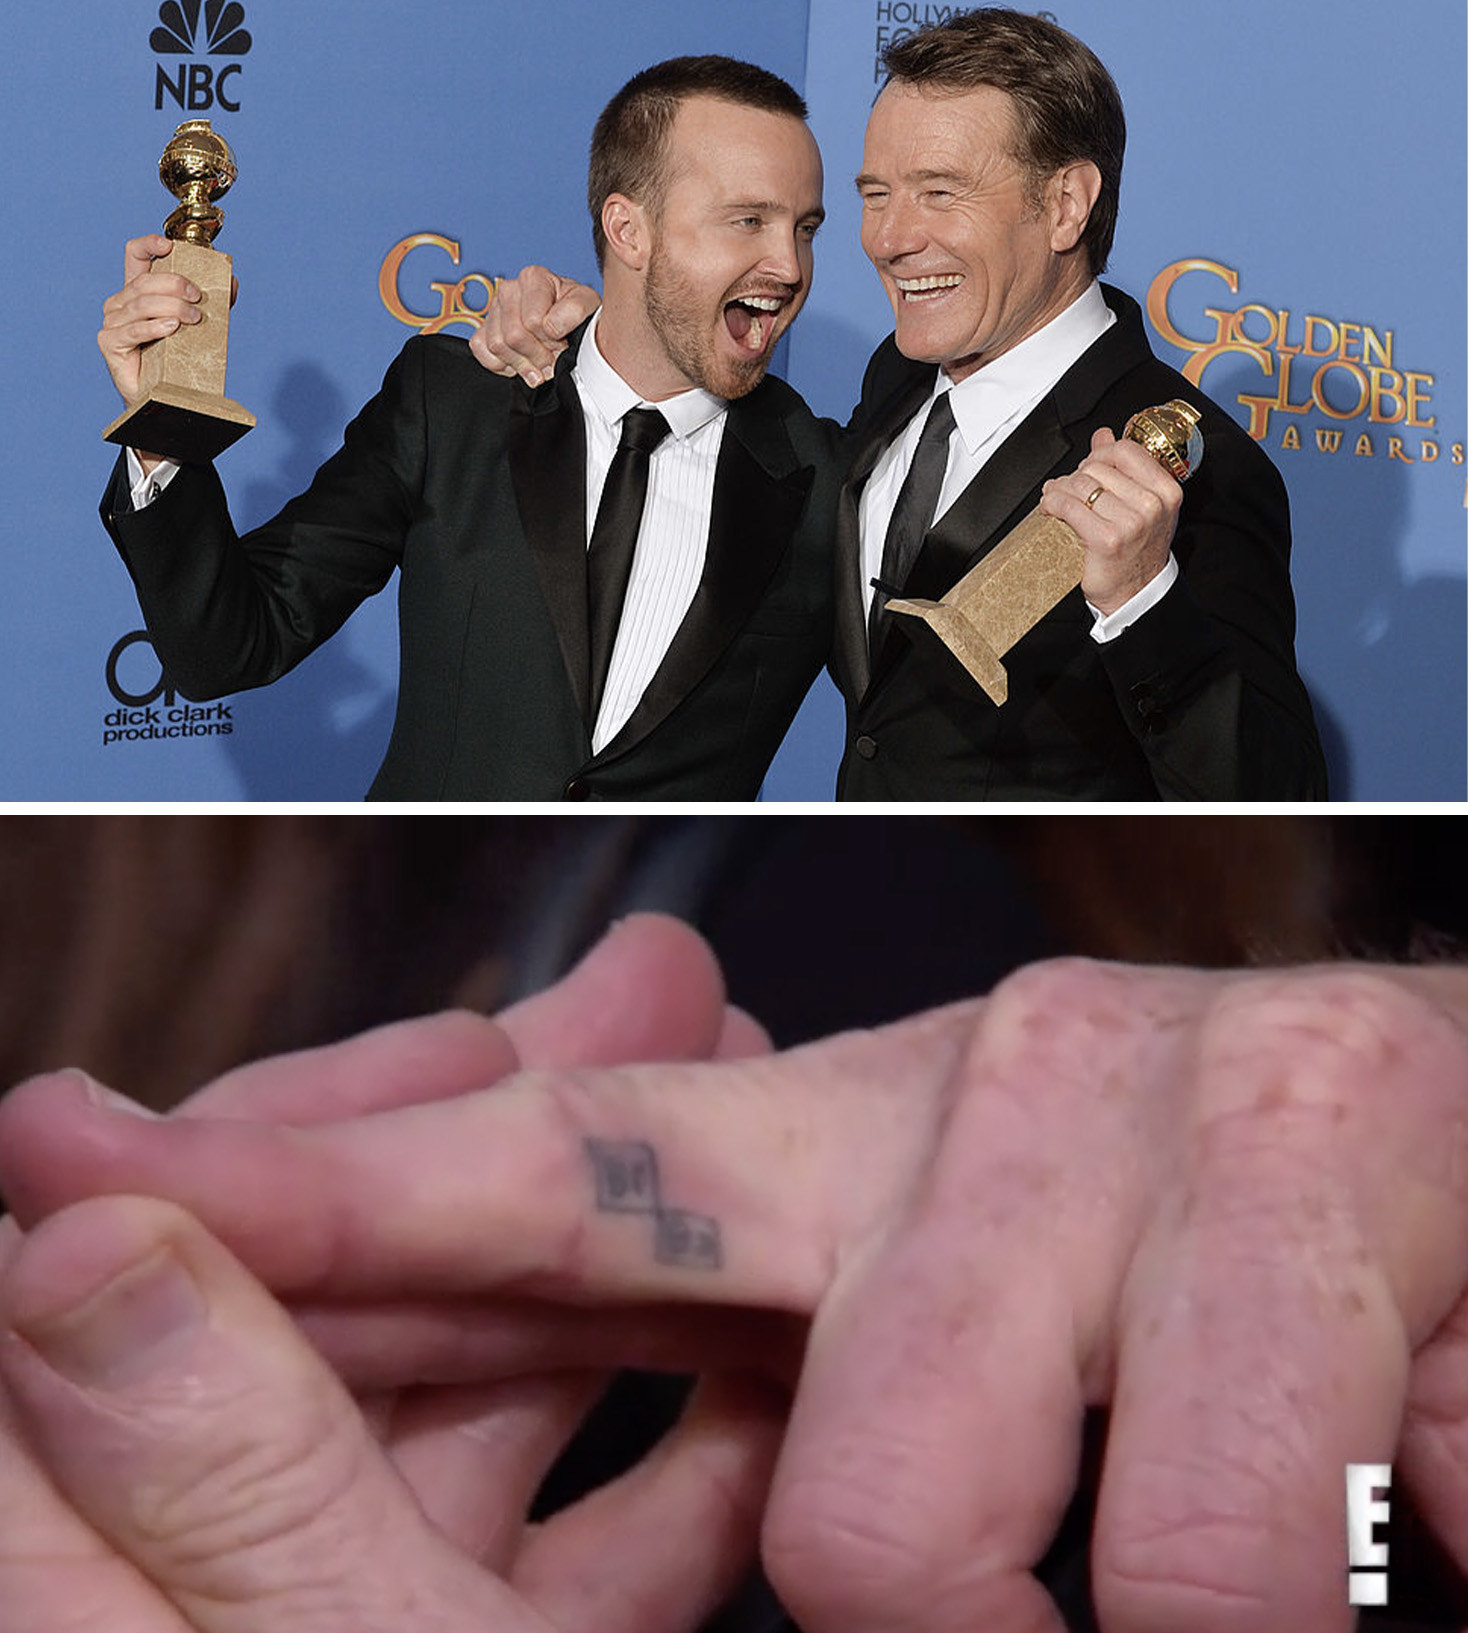 Aaron and Bryan celebrating with their Golden Globes and a close-up of Bryan's Breaking Bad logo tattoo